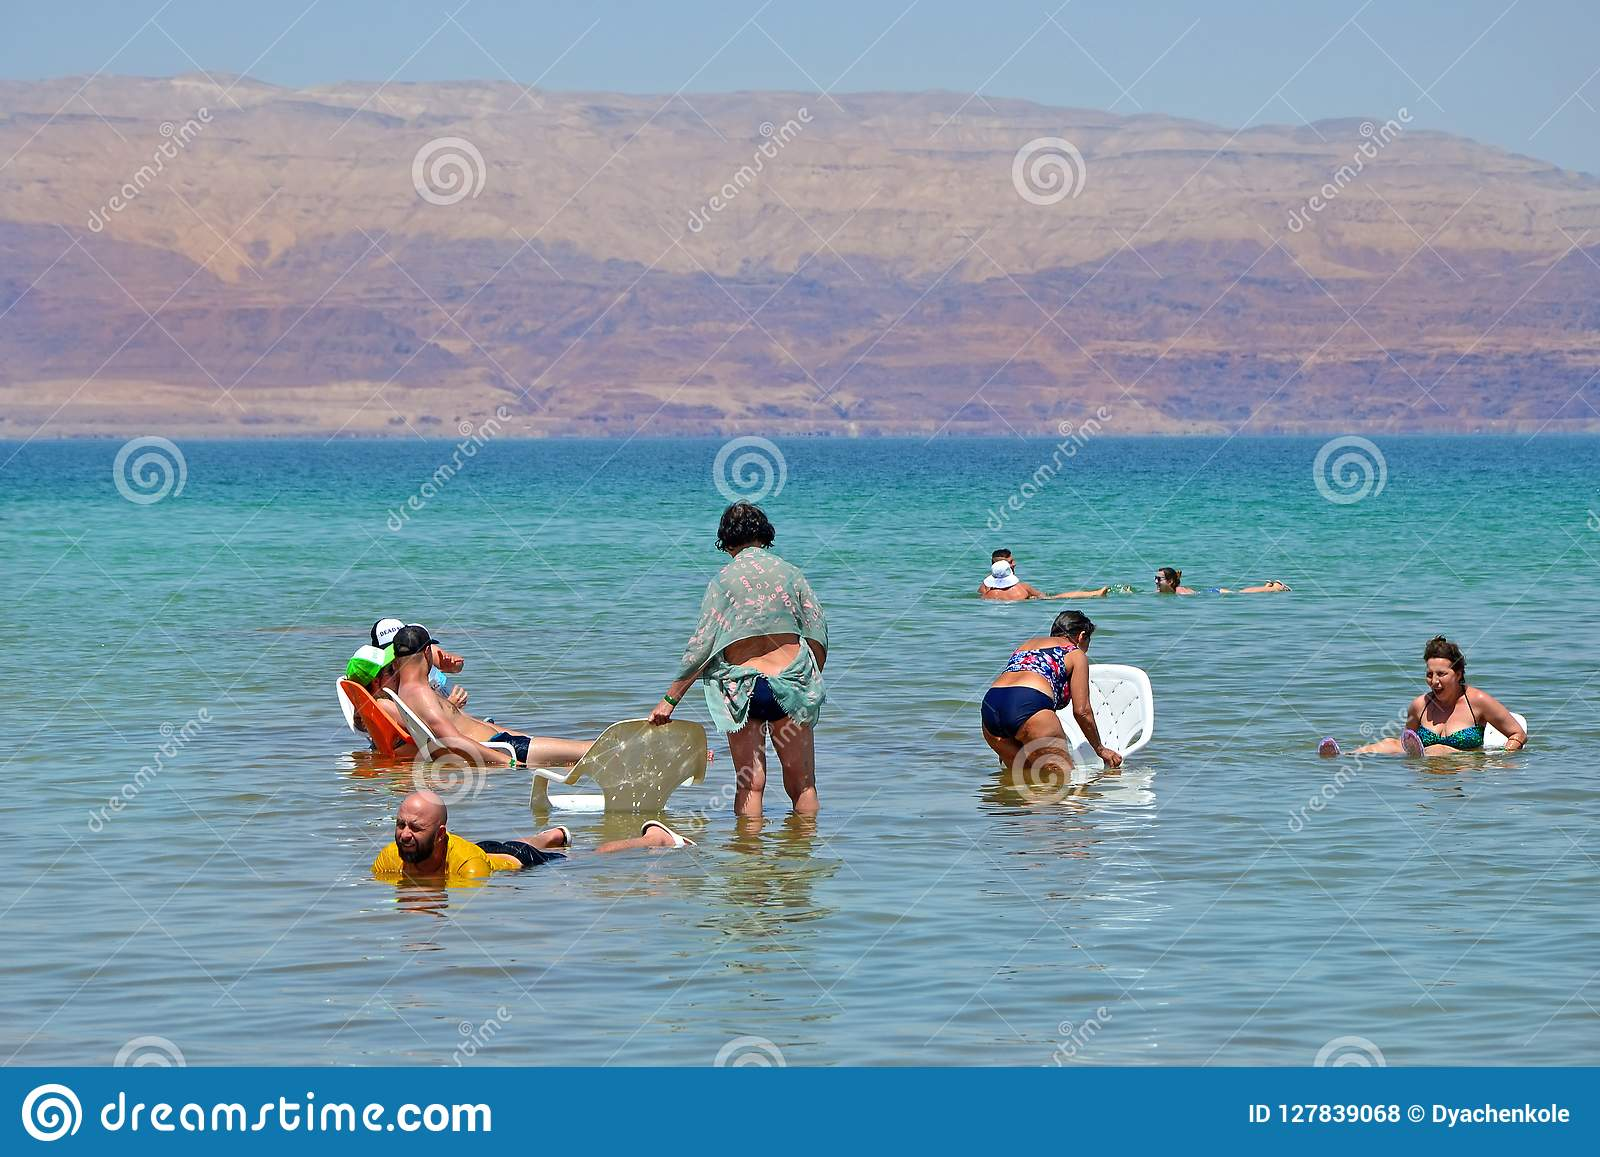 Dead sea, Israel - 31 MAY 2017: people on chairs relaxes and swims in the water of the Dead Sea in Israel. tourism,